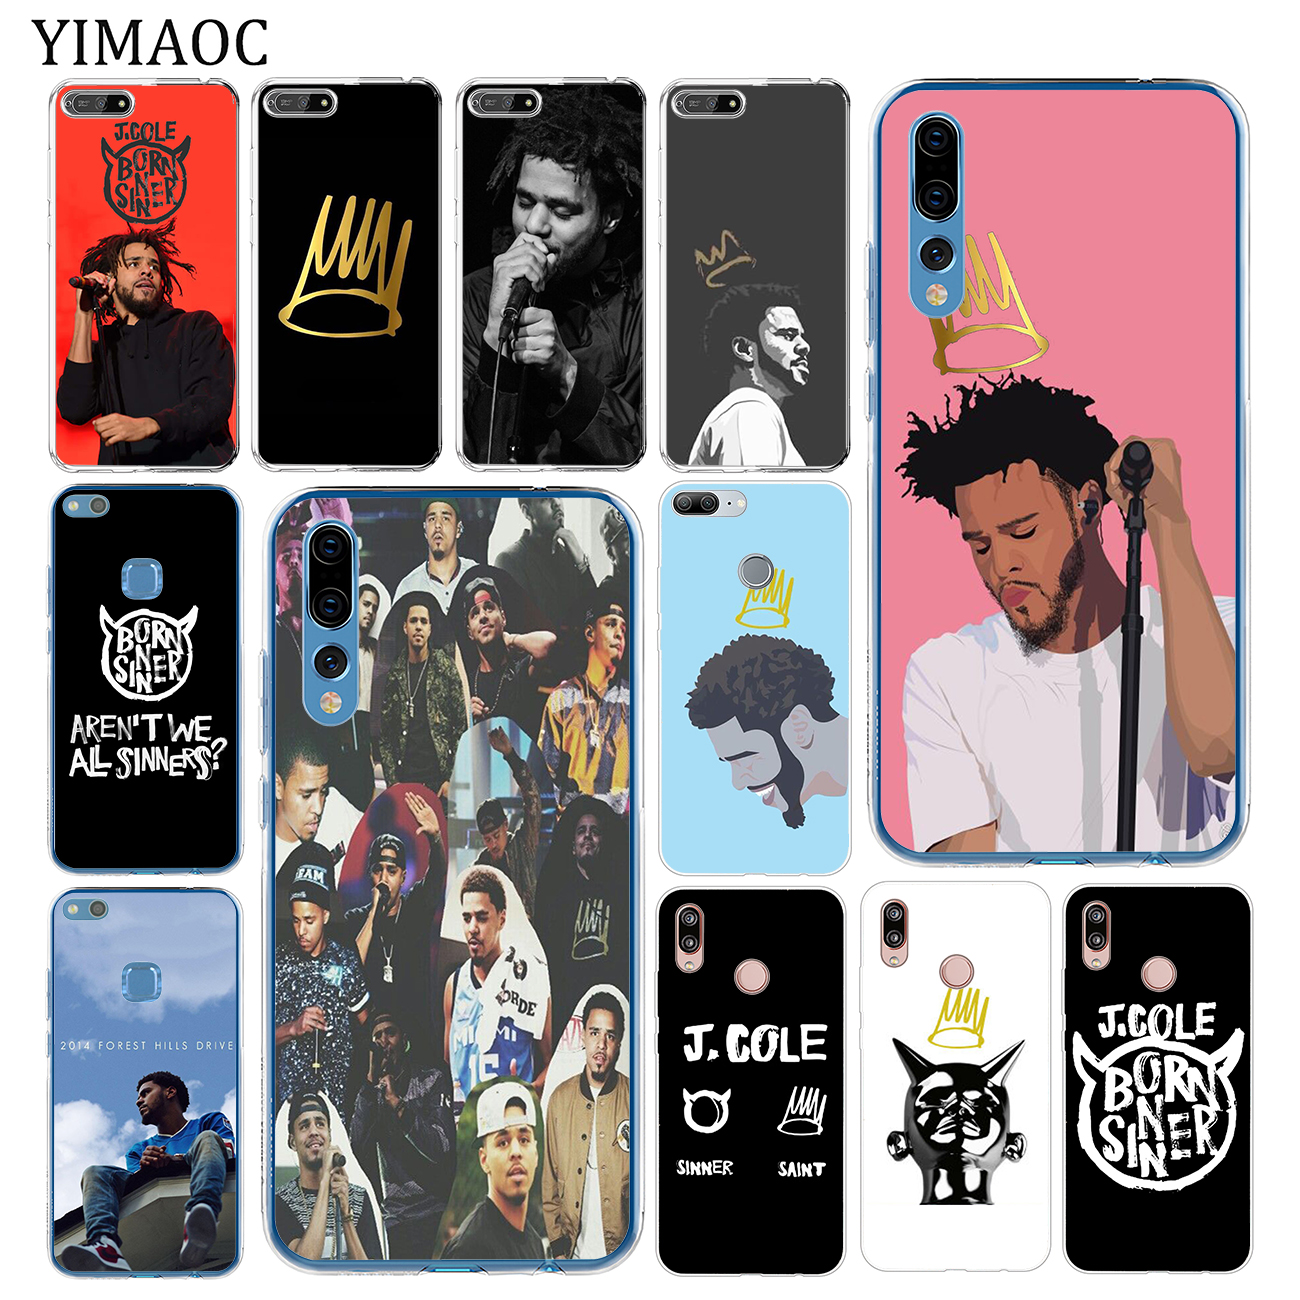 j cole sinner and saint iphone case